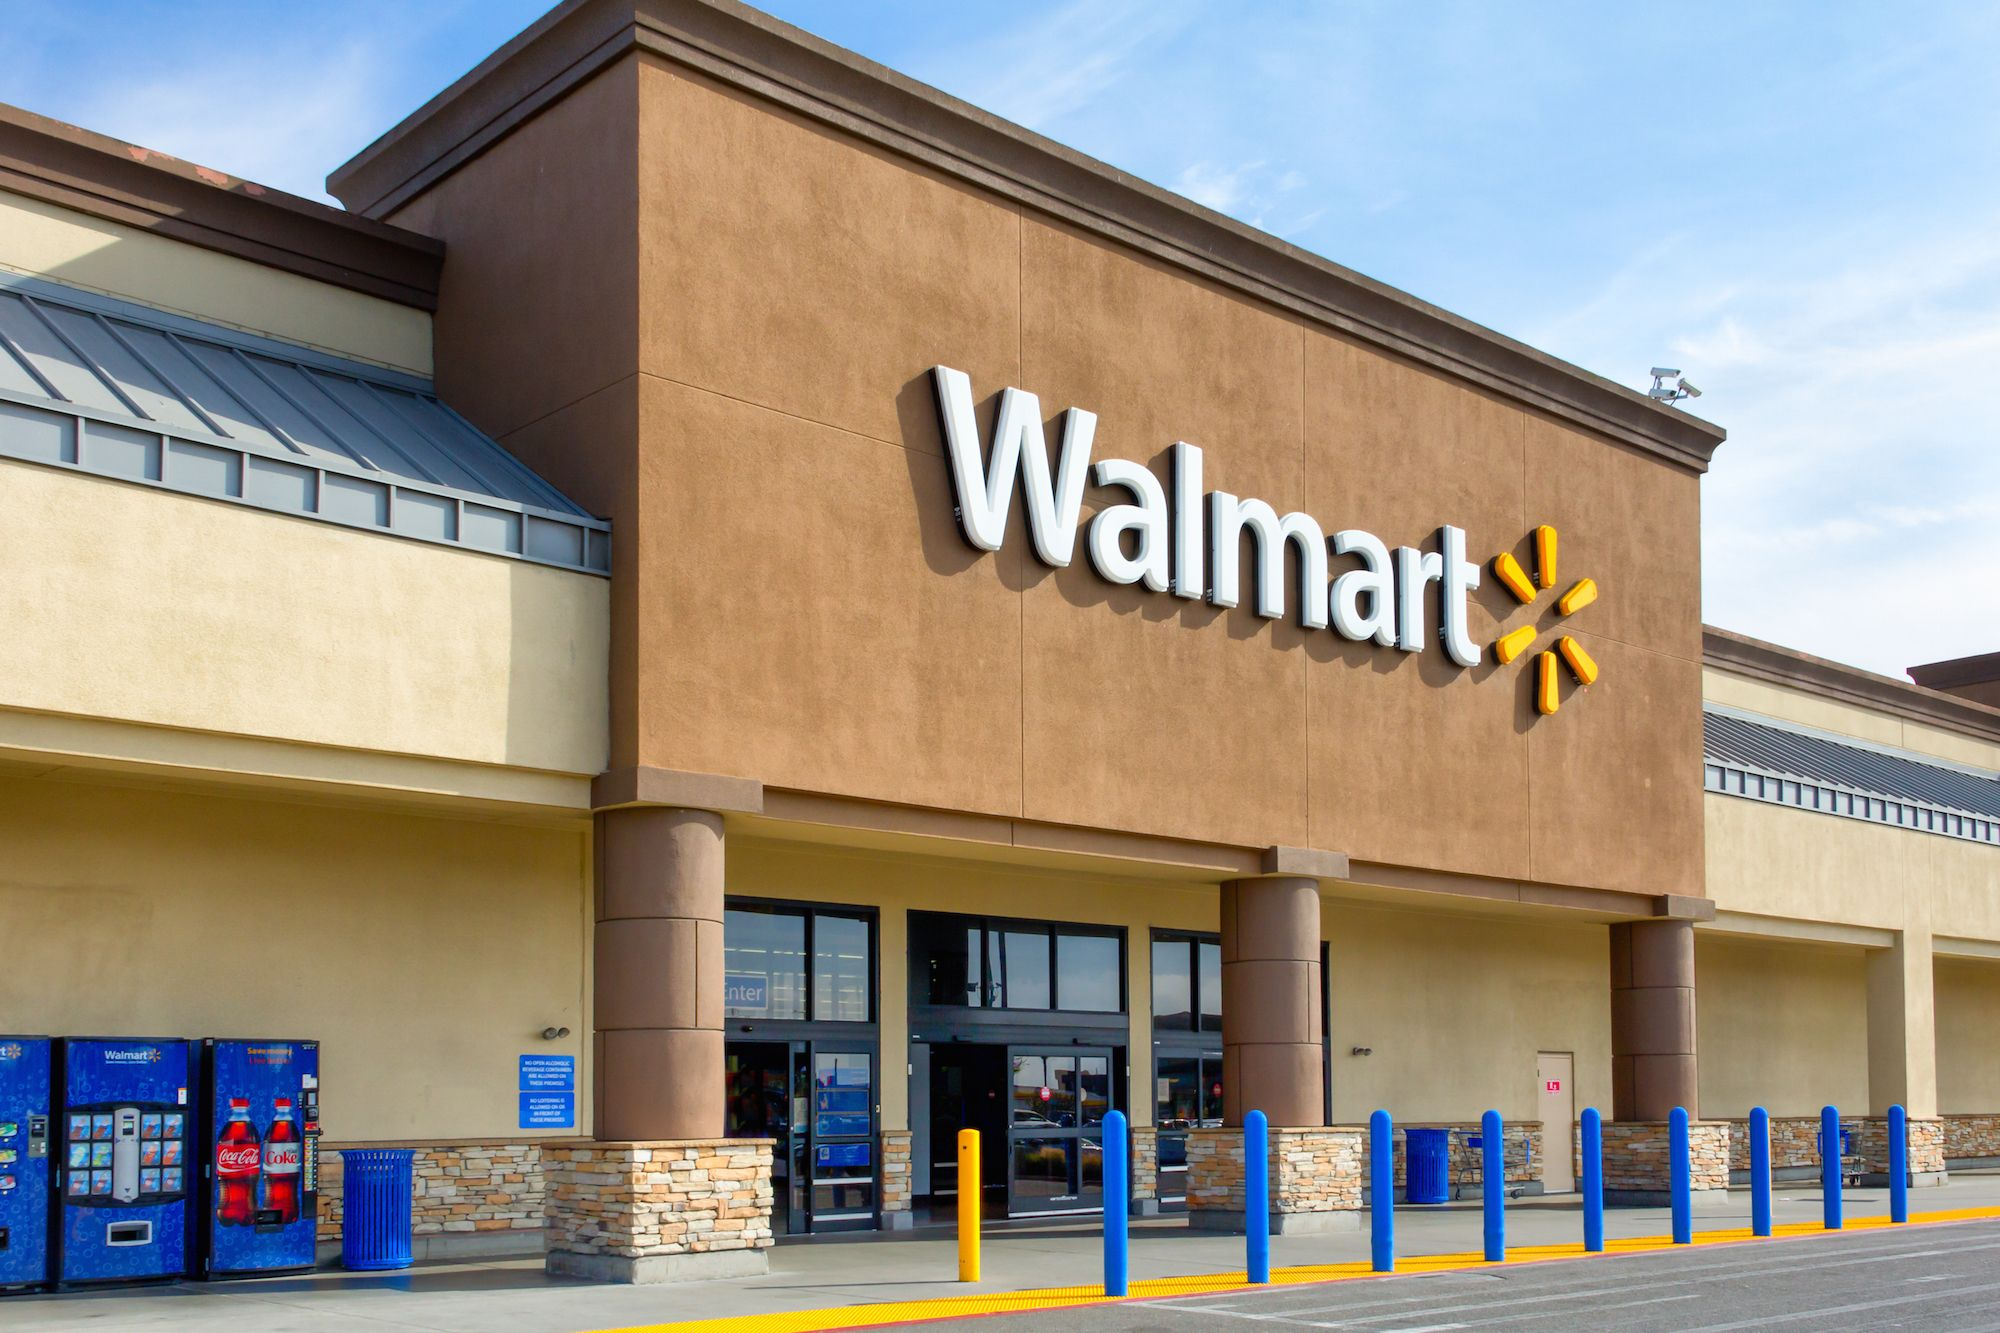 Walmart Holiday Hours Is Walmart Open On Labor Day